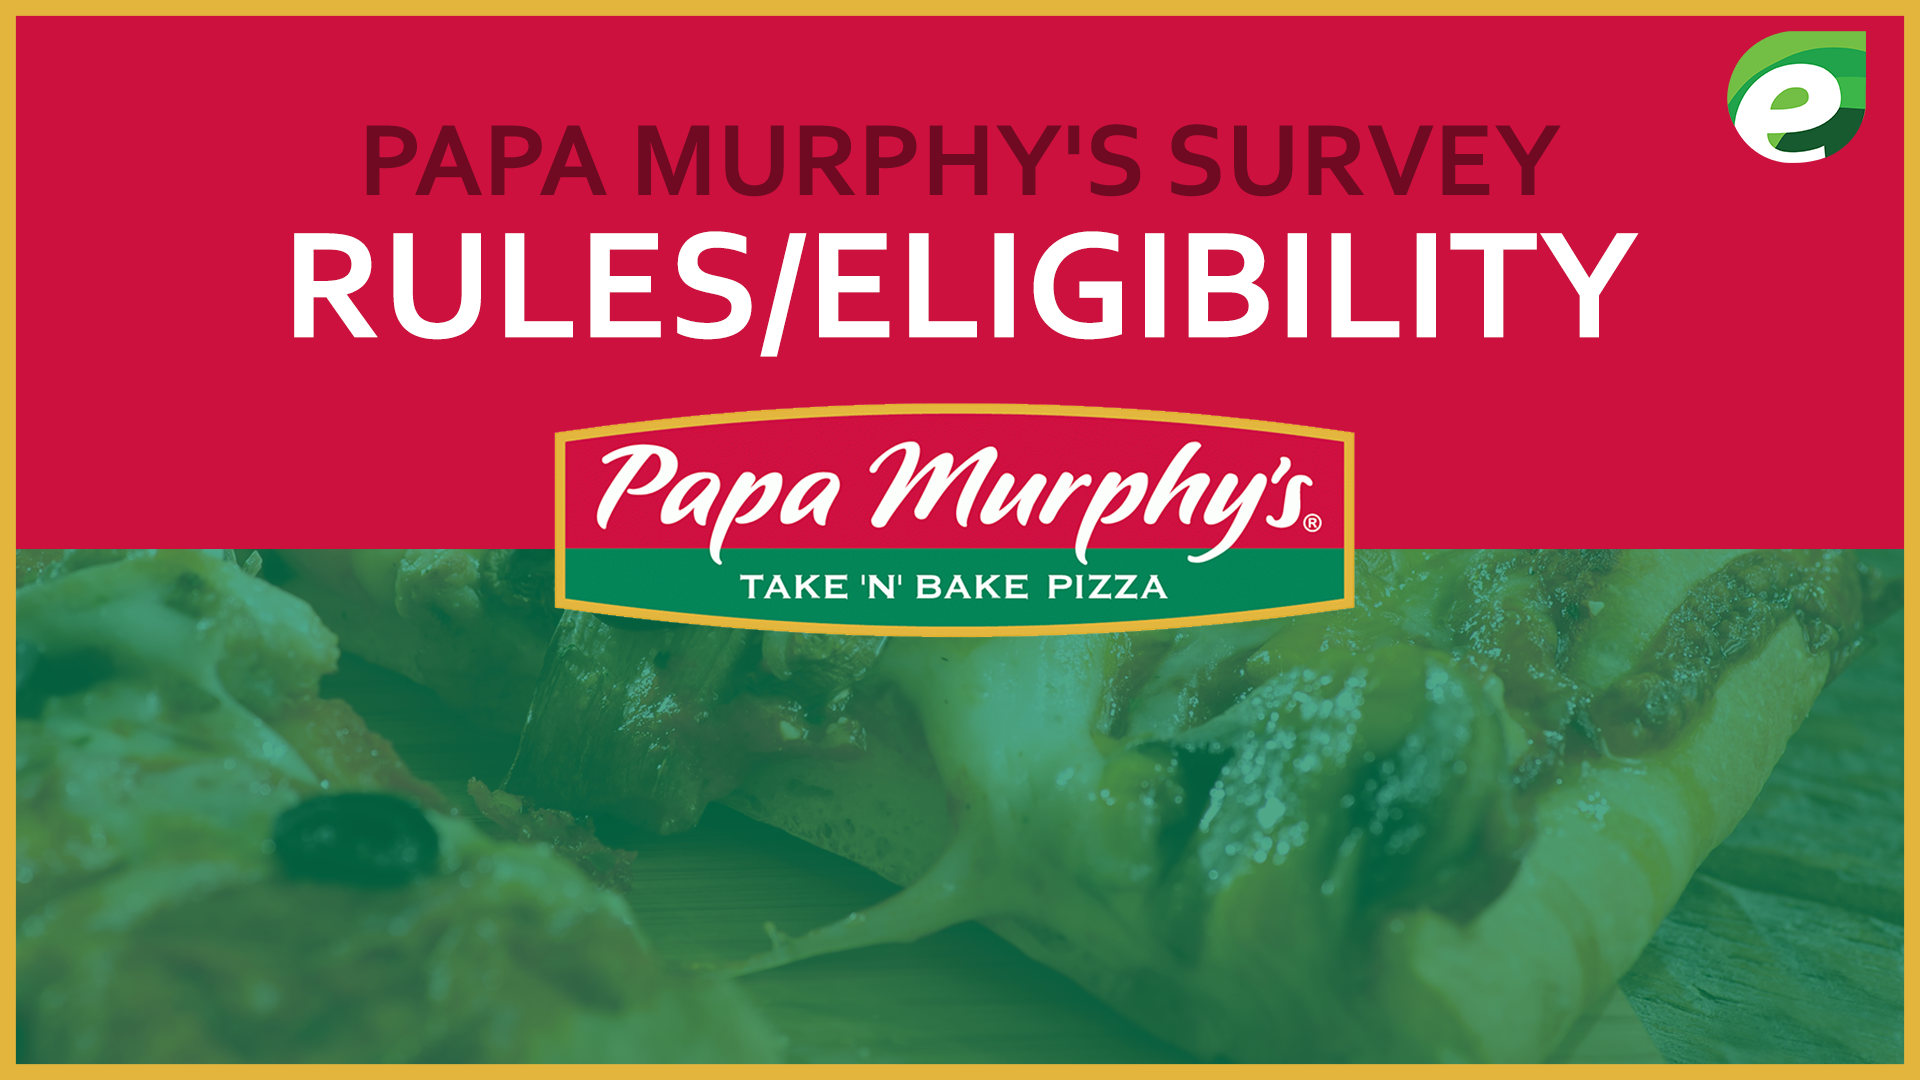 papa survey - rules /eligibility